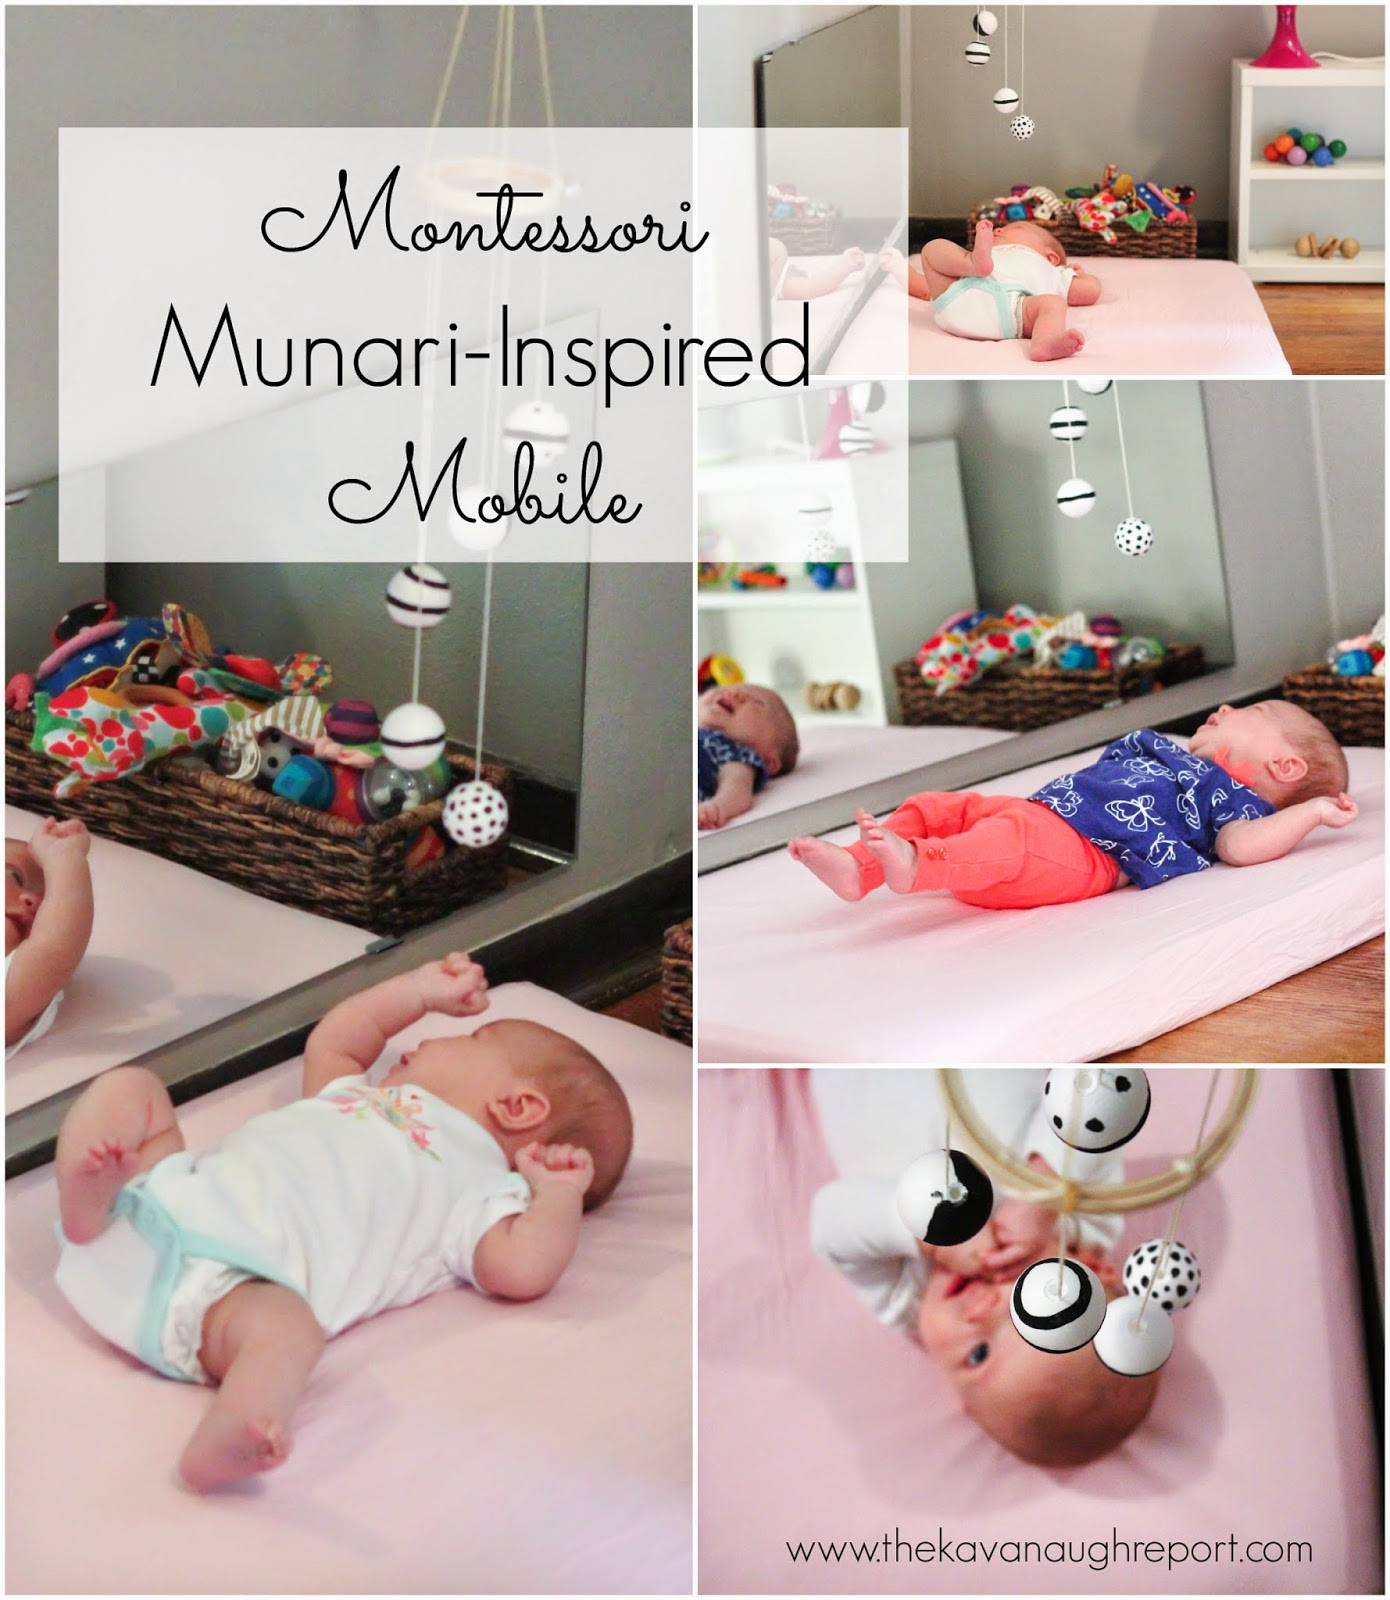 An overview of the Montessori baby visual mobile series. The visual series includes the Munari, Octahedron, Gobbi and Dancers mobiles and are the first work for infants from birth until they are several months old.